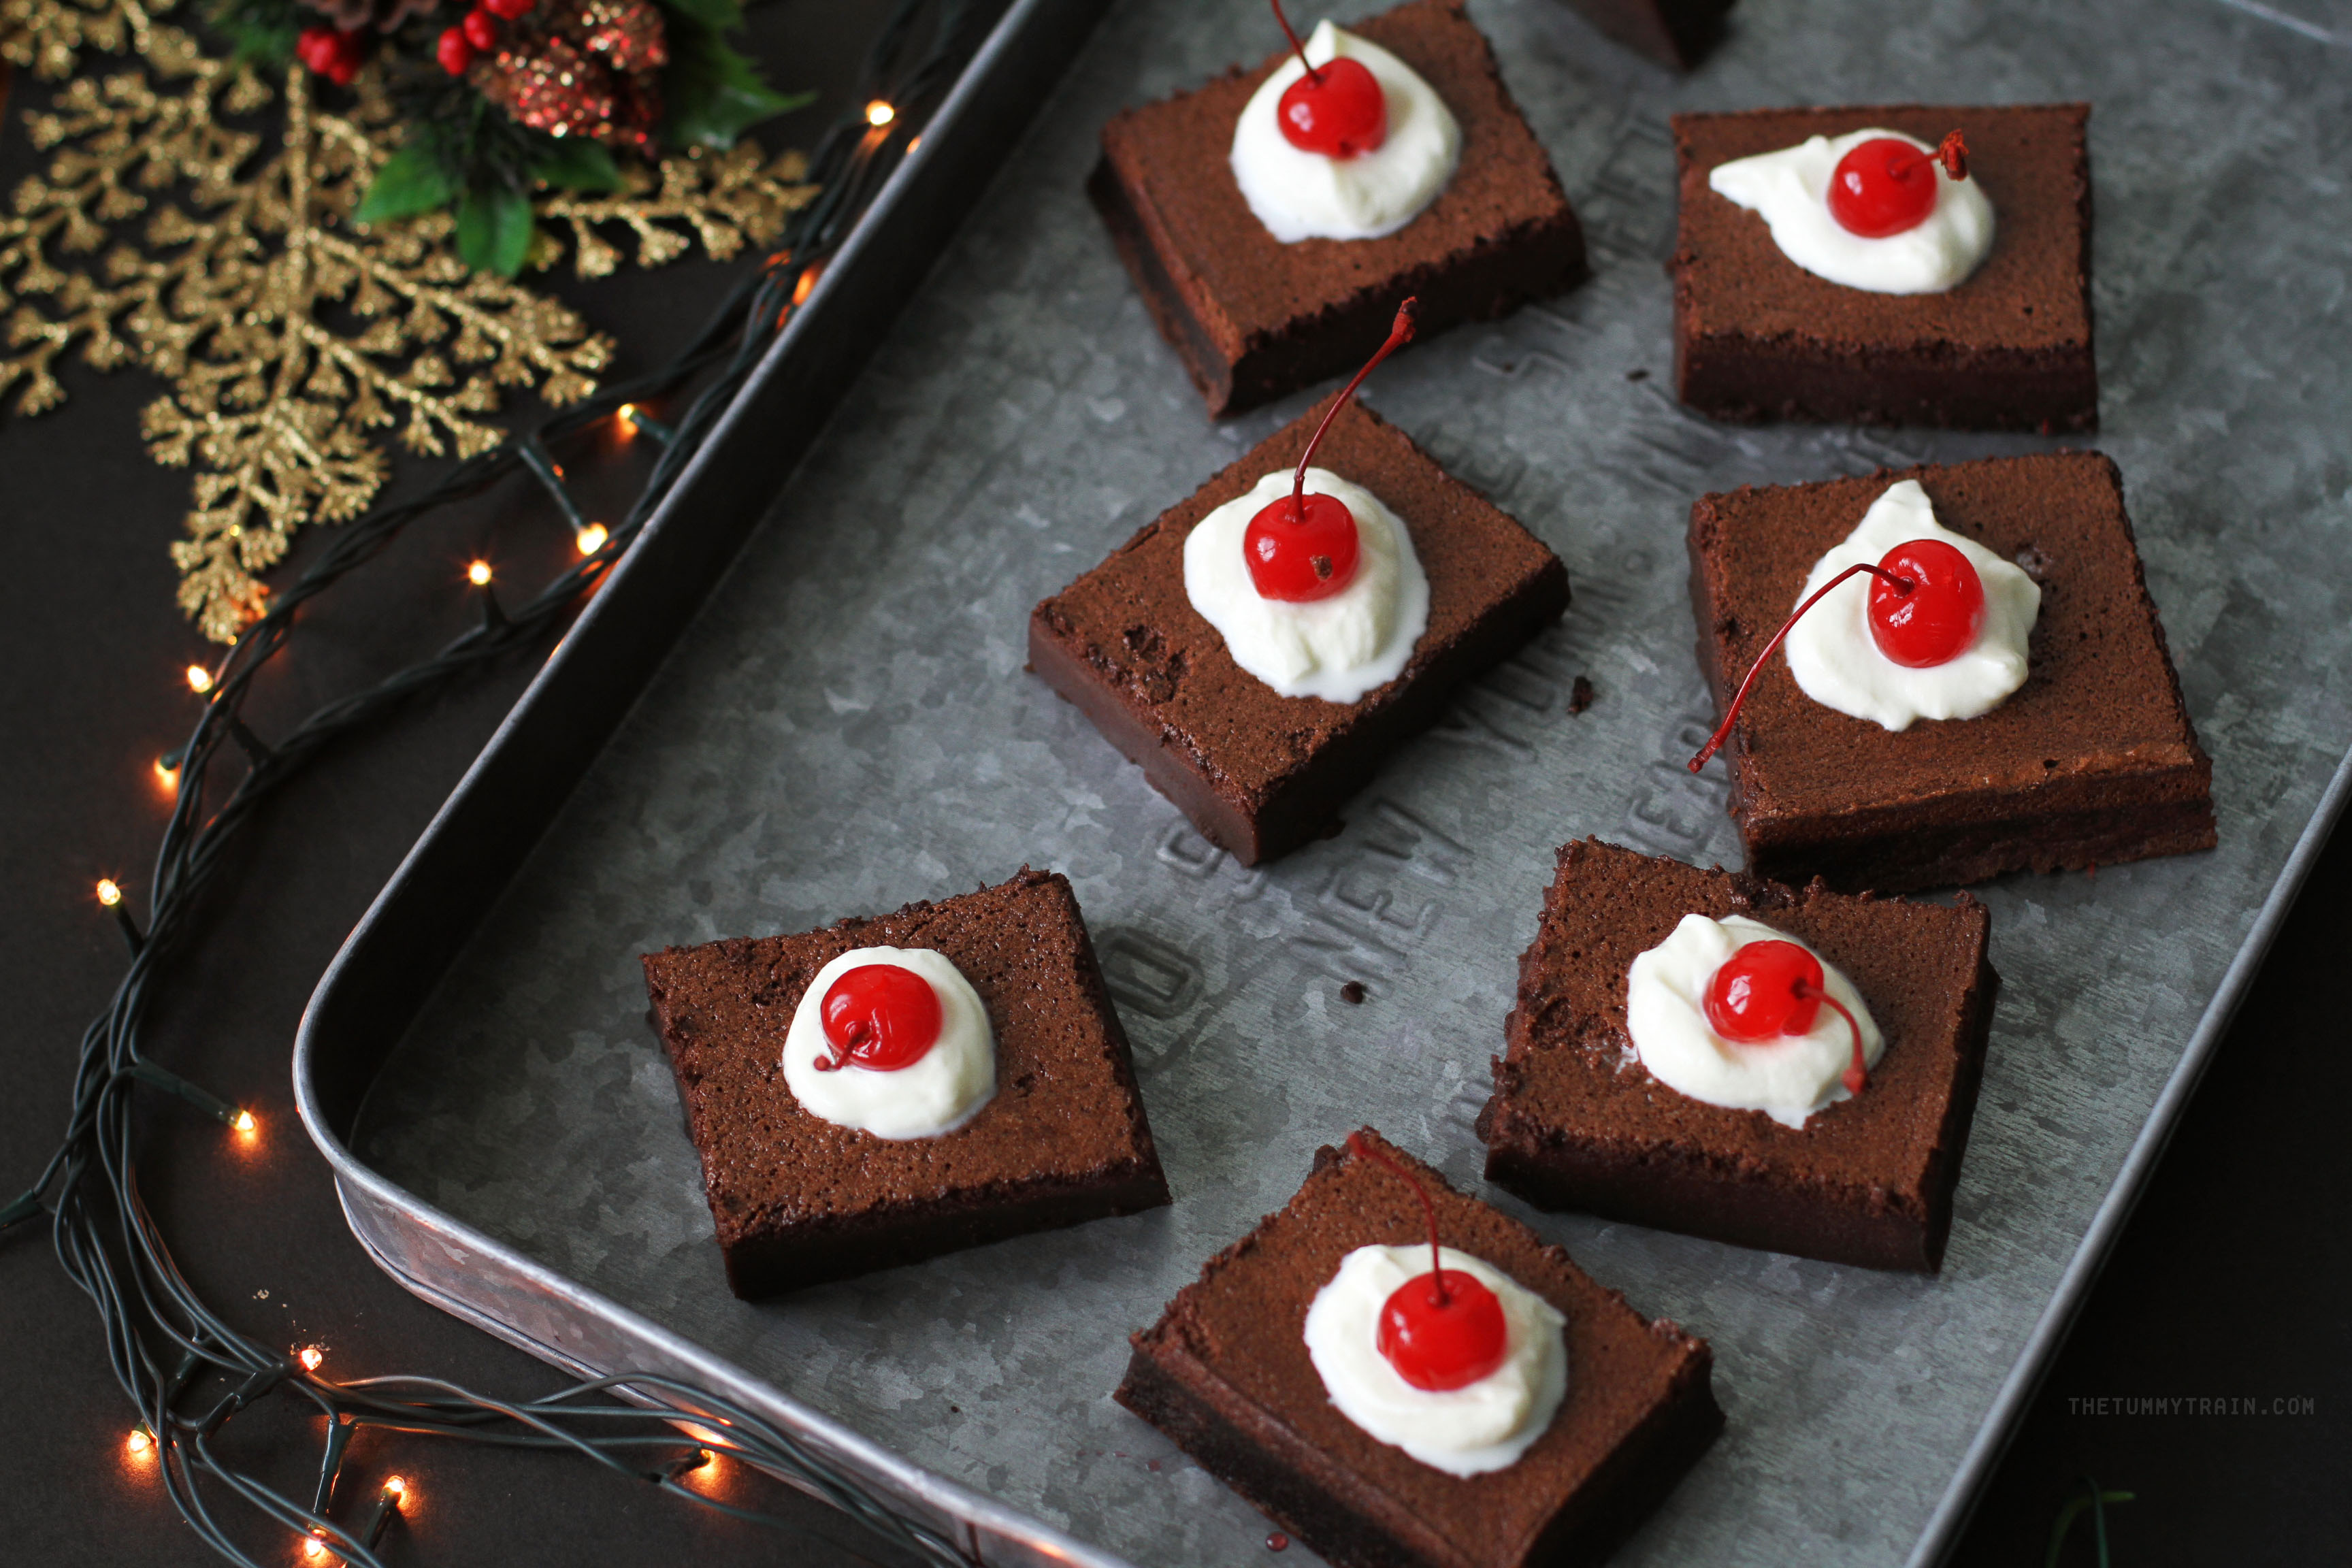 Choco Magic Cake 2 - A newfound obsession in time for Christmas with this Chocolate Magic Cake recipe